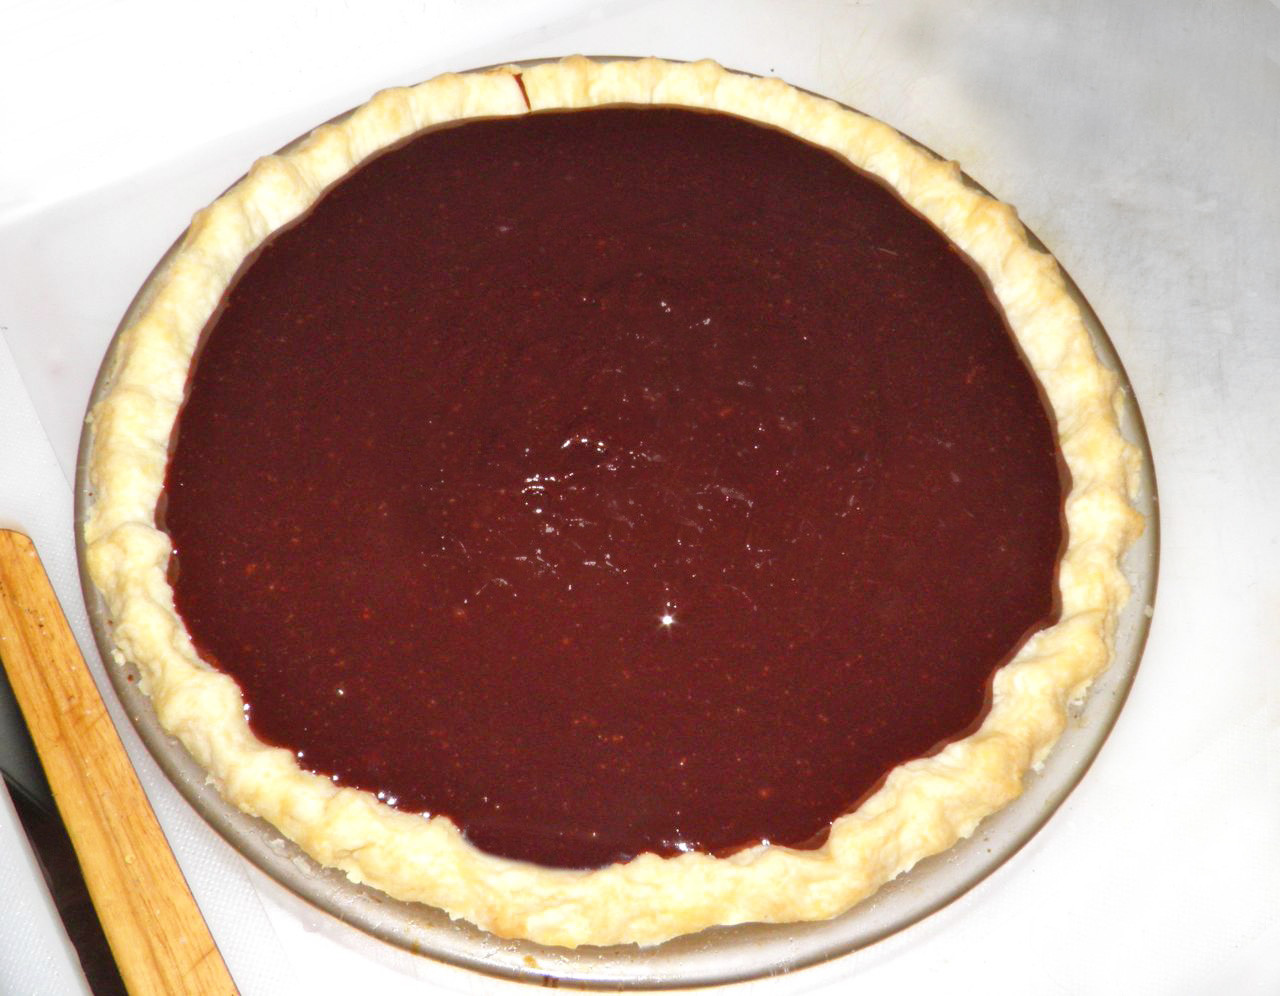 Old Fashioned Chocolate Pie  Devoid Culture And Indifferent To The Arts Nostalgia